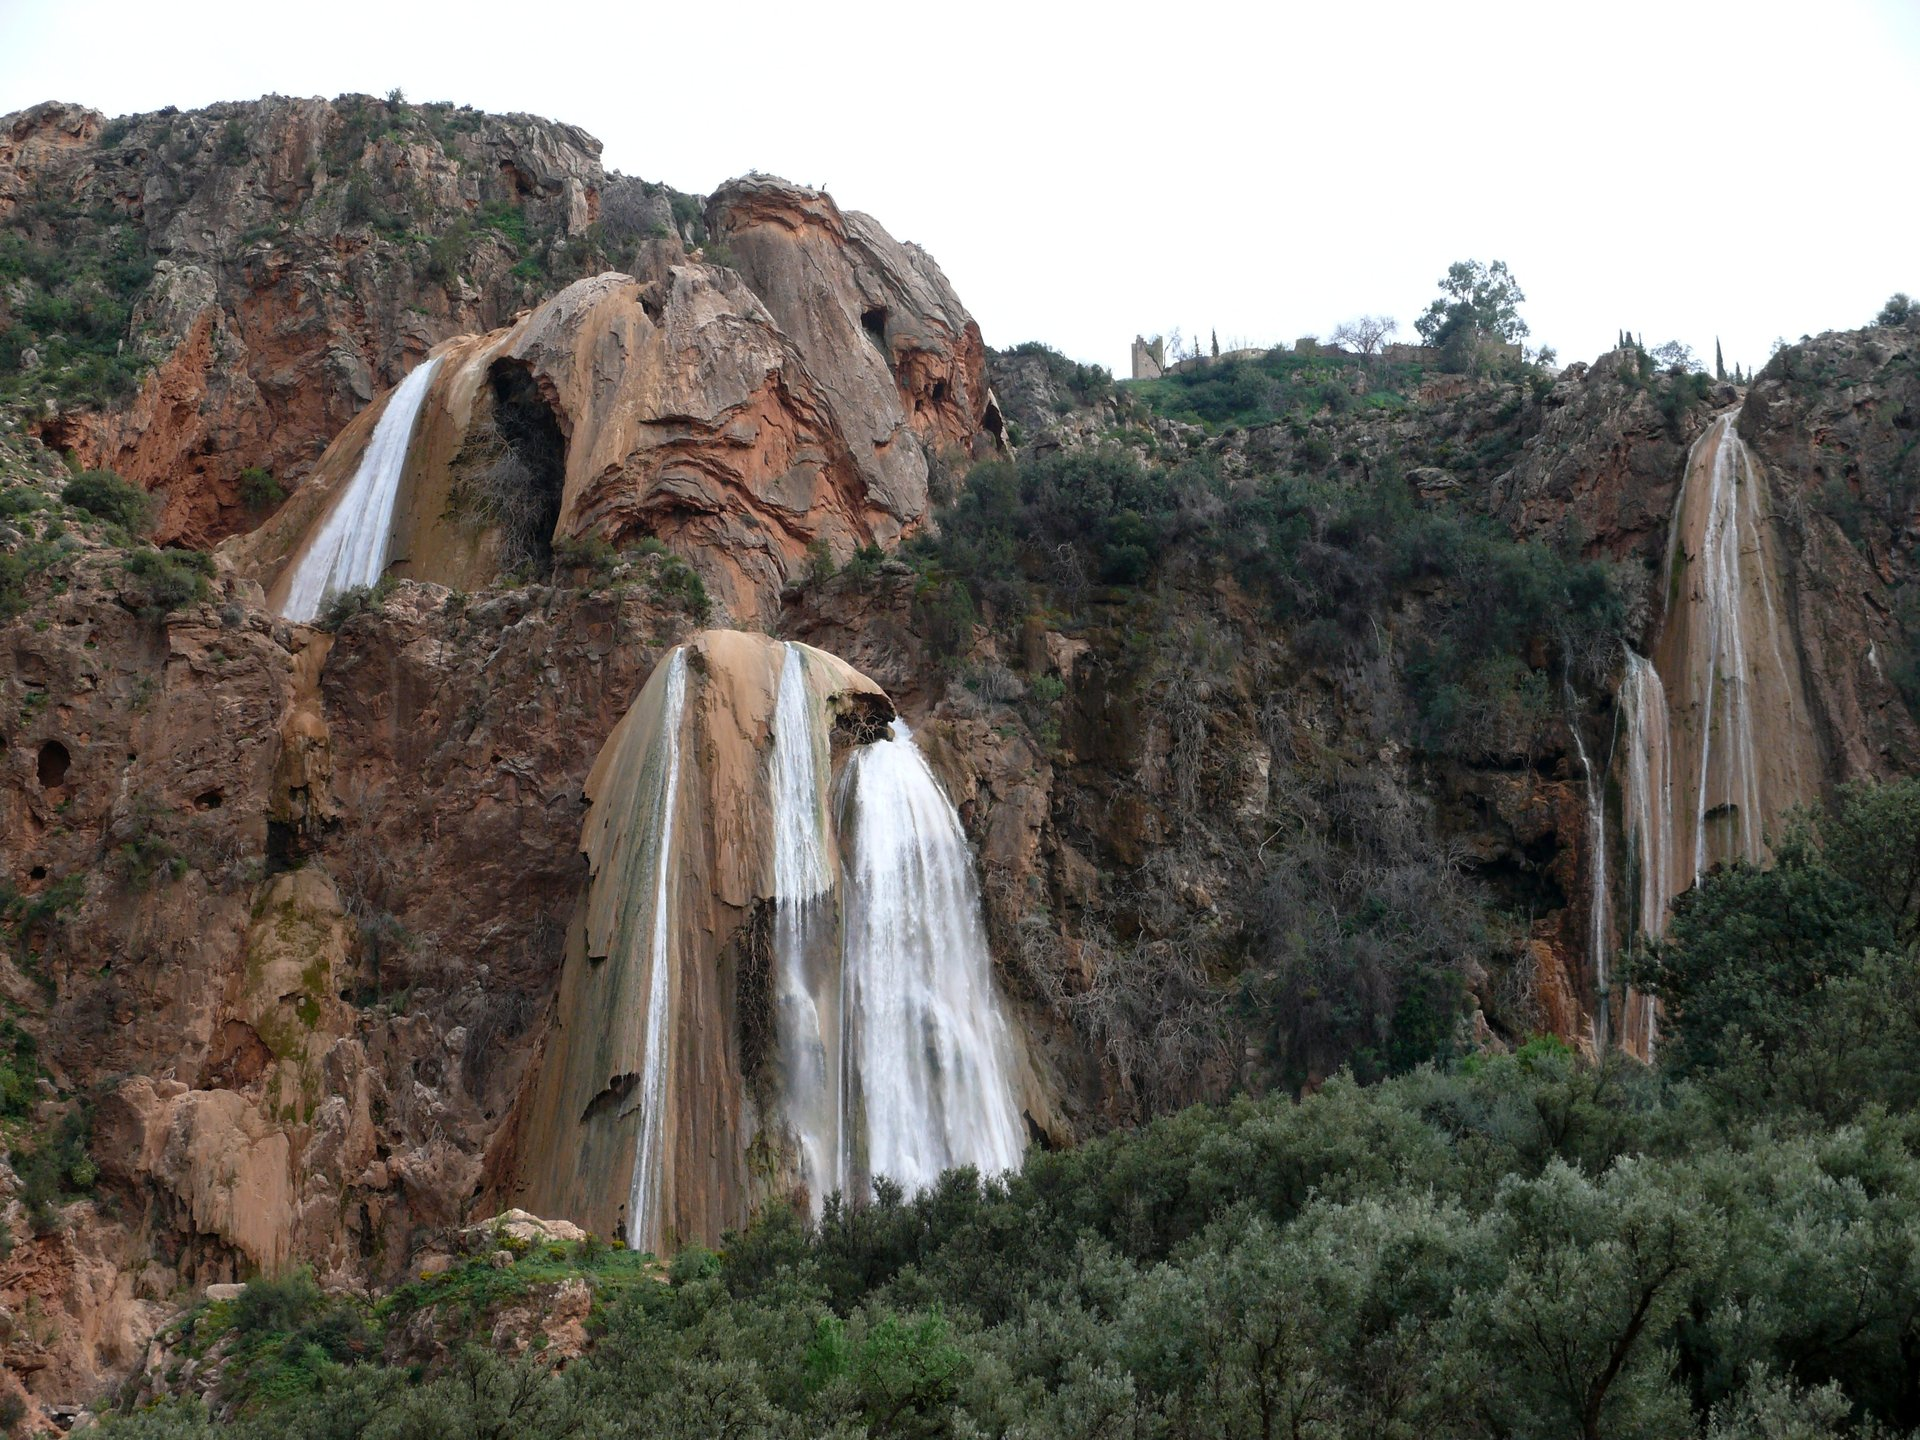 Winter Waterfalls in Morocco - Best Season